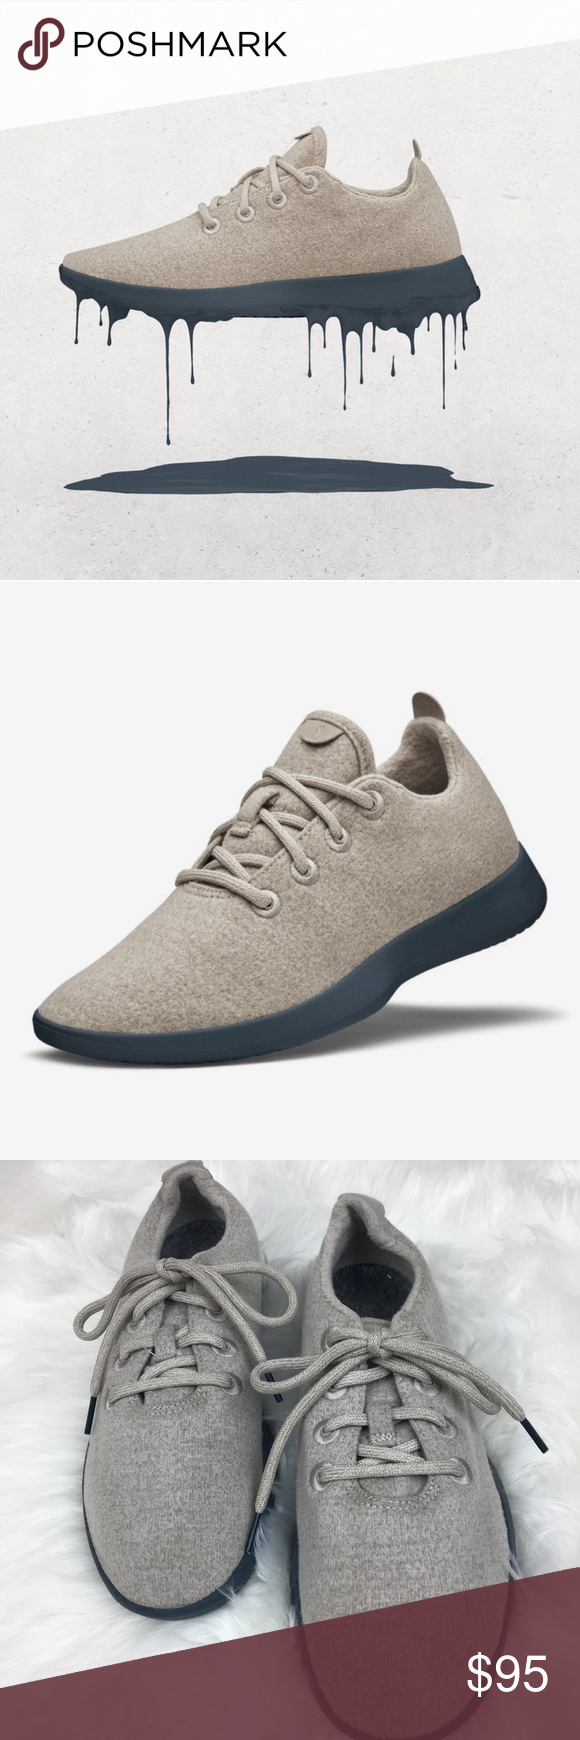 494e4f1ade0 Allbirds men s sand and navy wool runners Authentic. Brand new ...